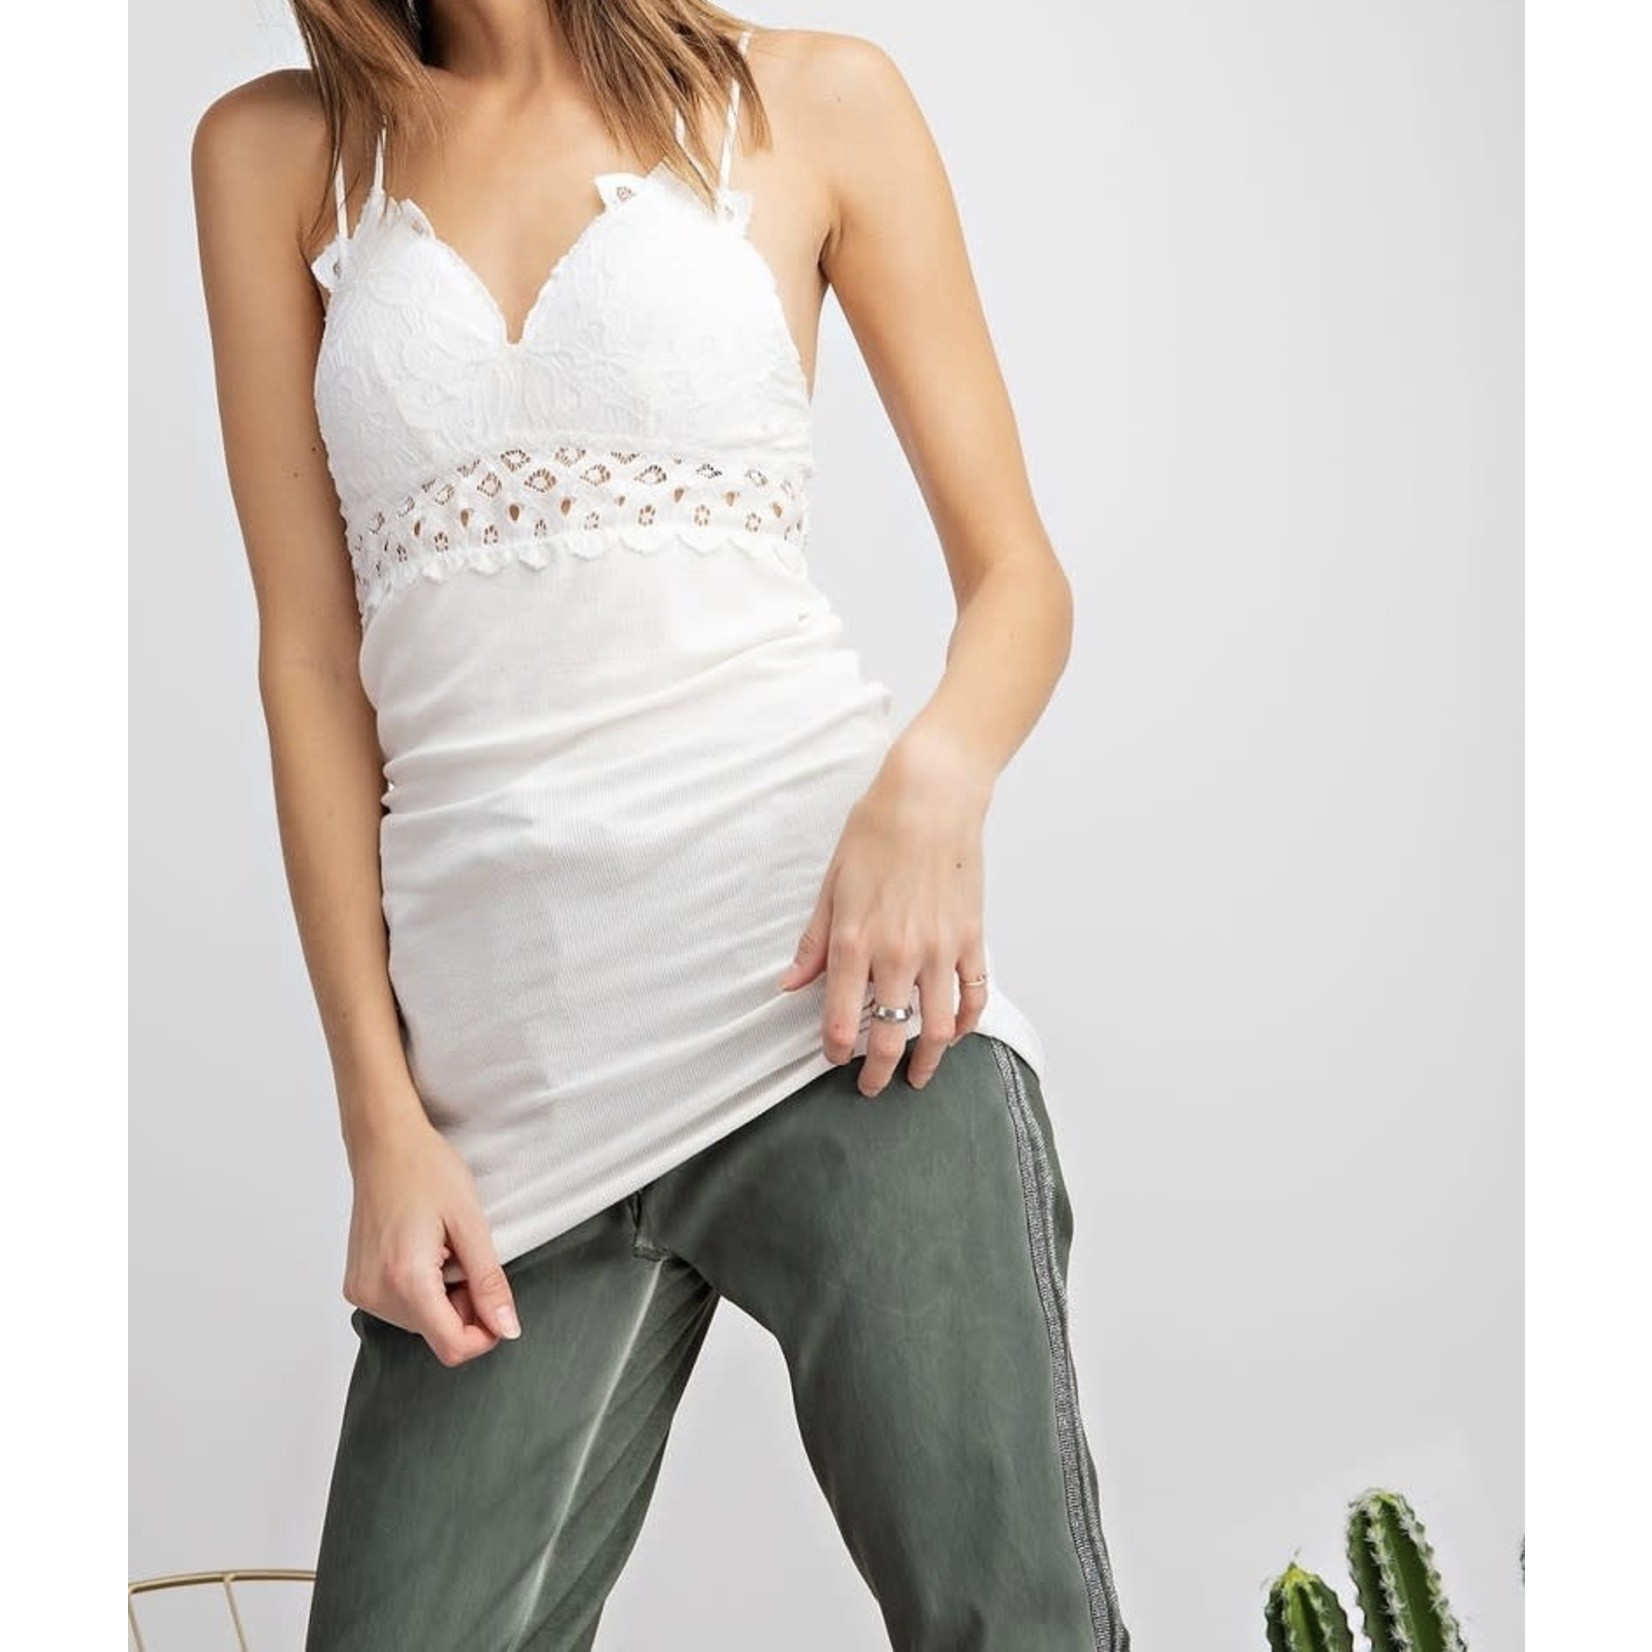 Easel Bralette Ribbed Tank Top Contrast Tunic